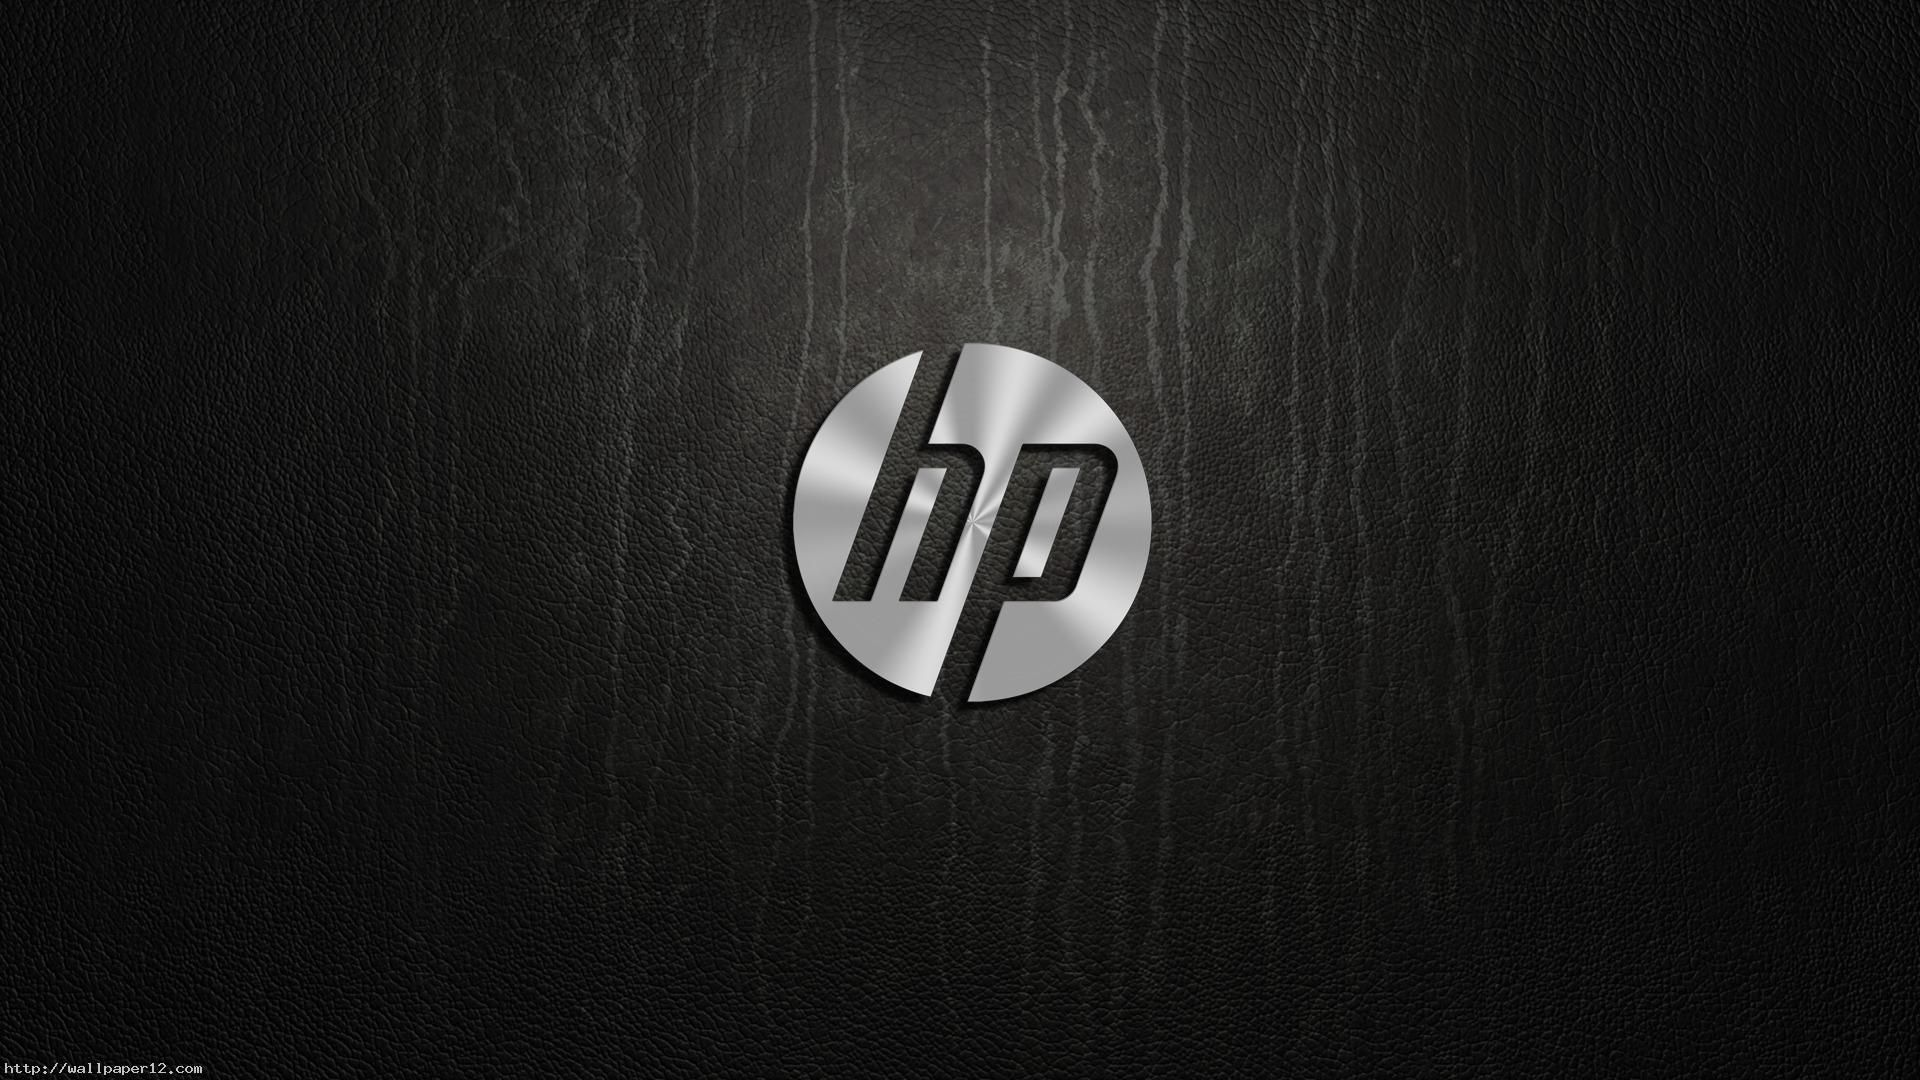 Hp Wallpaper K Wallpapers Kid 19201080 Hp Wallpapers 1920